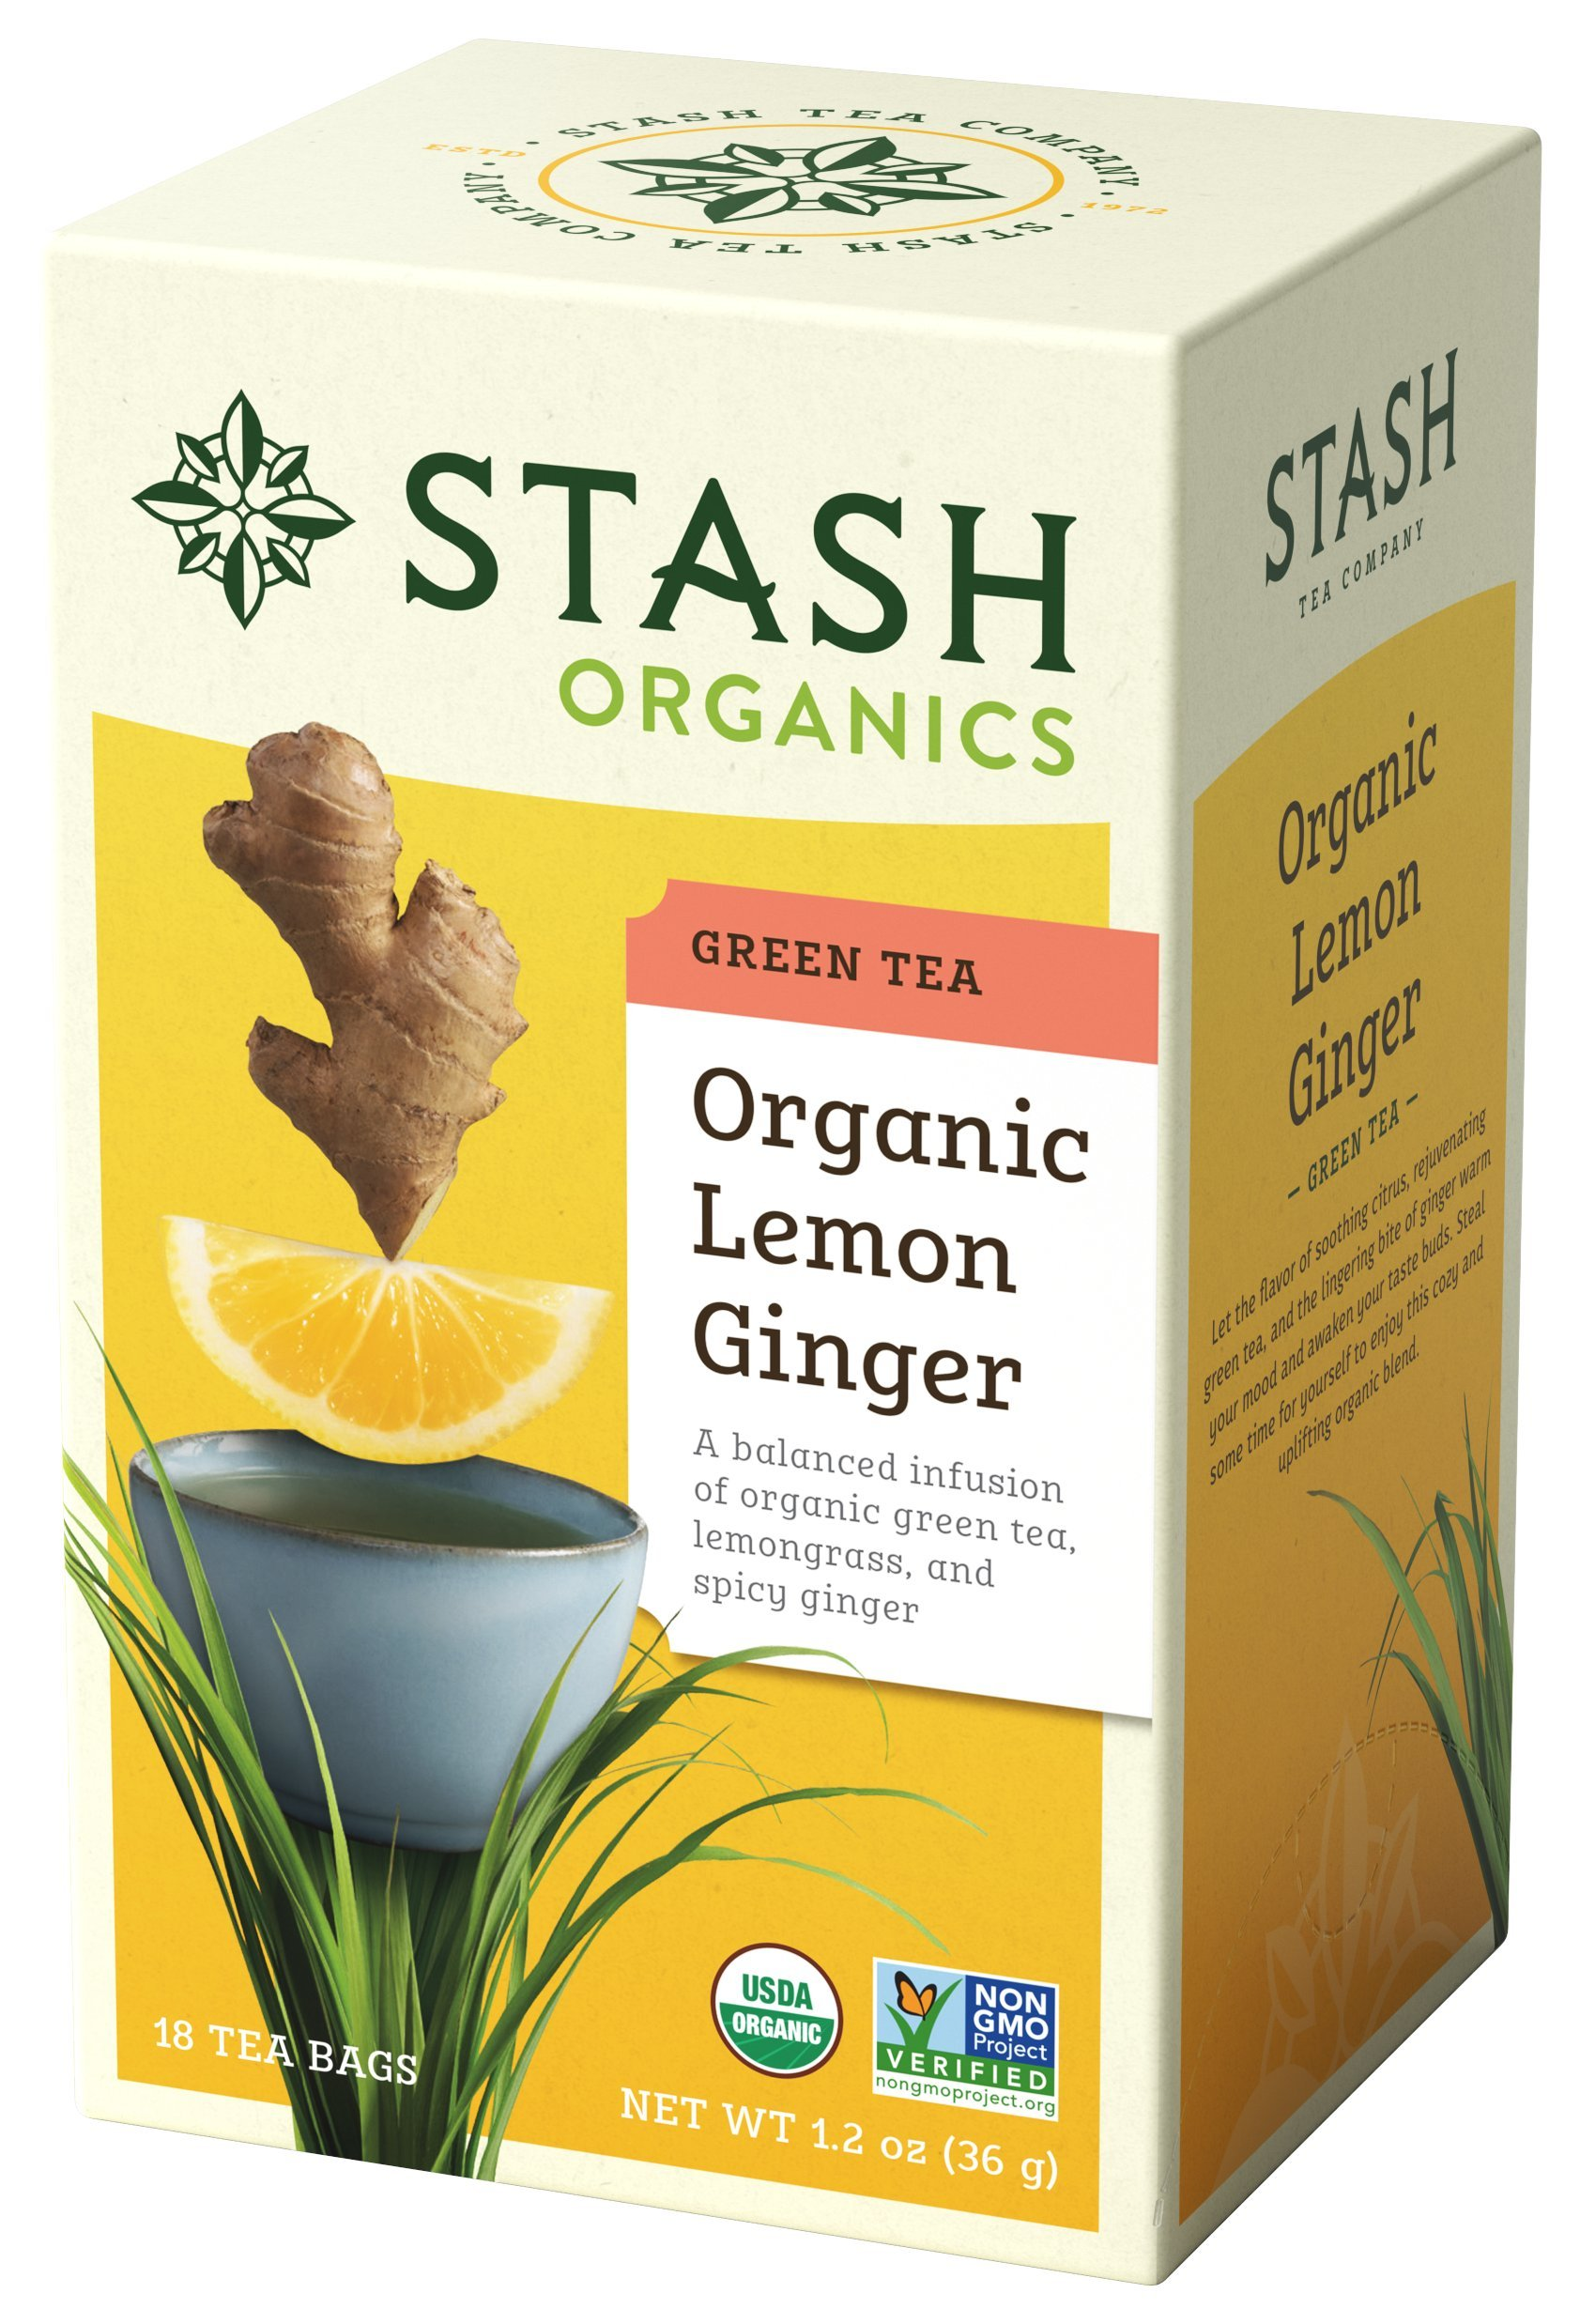 Stash Tea Organic Lemon Ginger Green Tea ,Individual Spiced Green Tea Bags for Use in Teapots Mugs or Teacups, 18 Count, Pack of 6 by Stash Tea